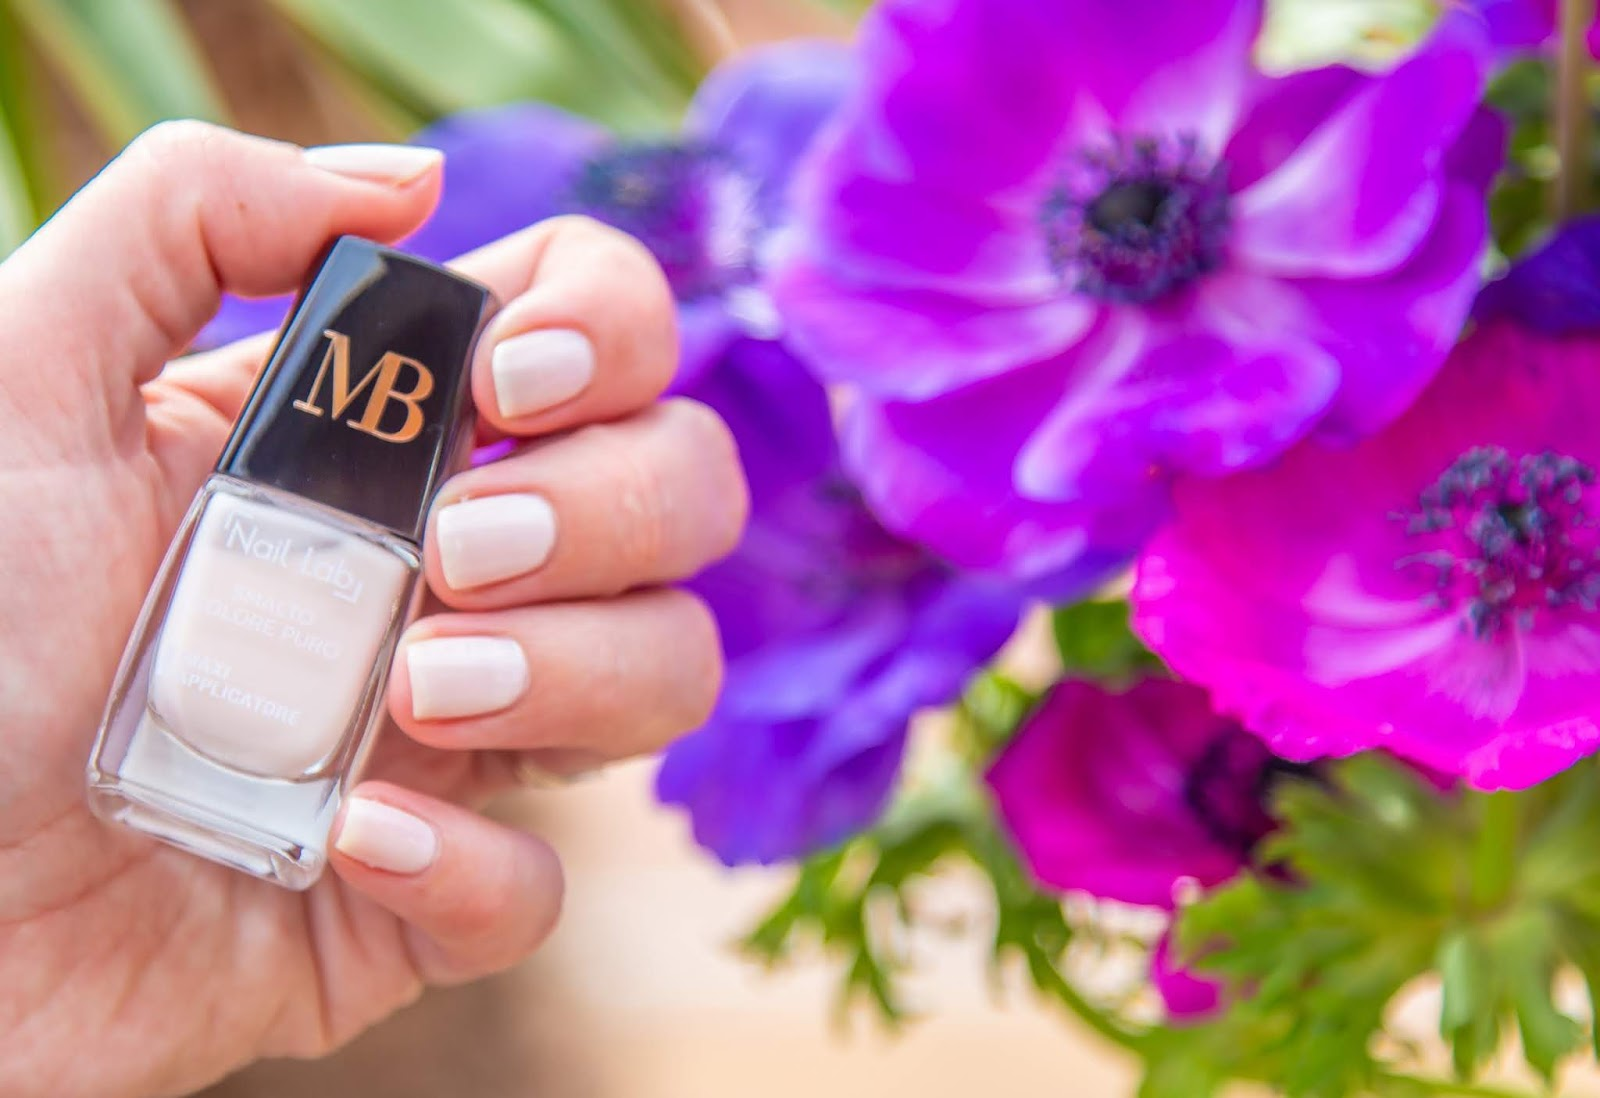 Les vernis Miss Broadway d'Intermarché : Top ou Flop